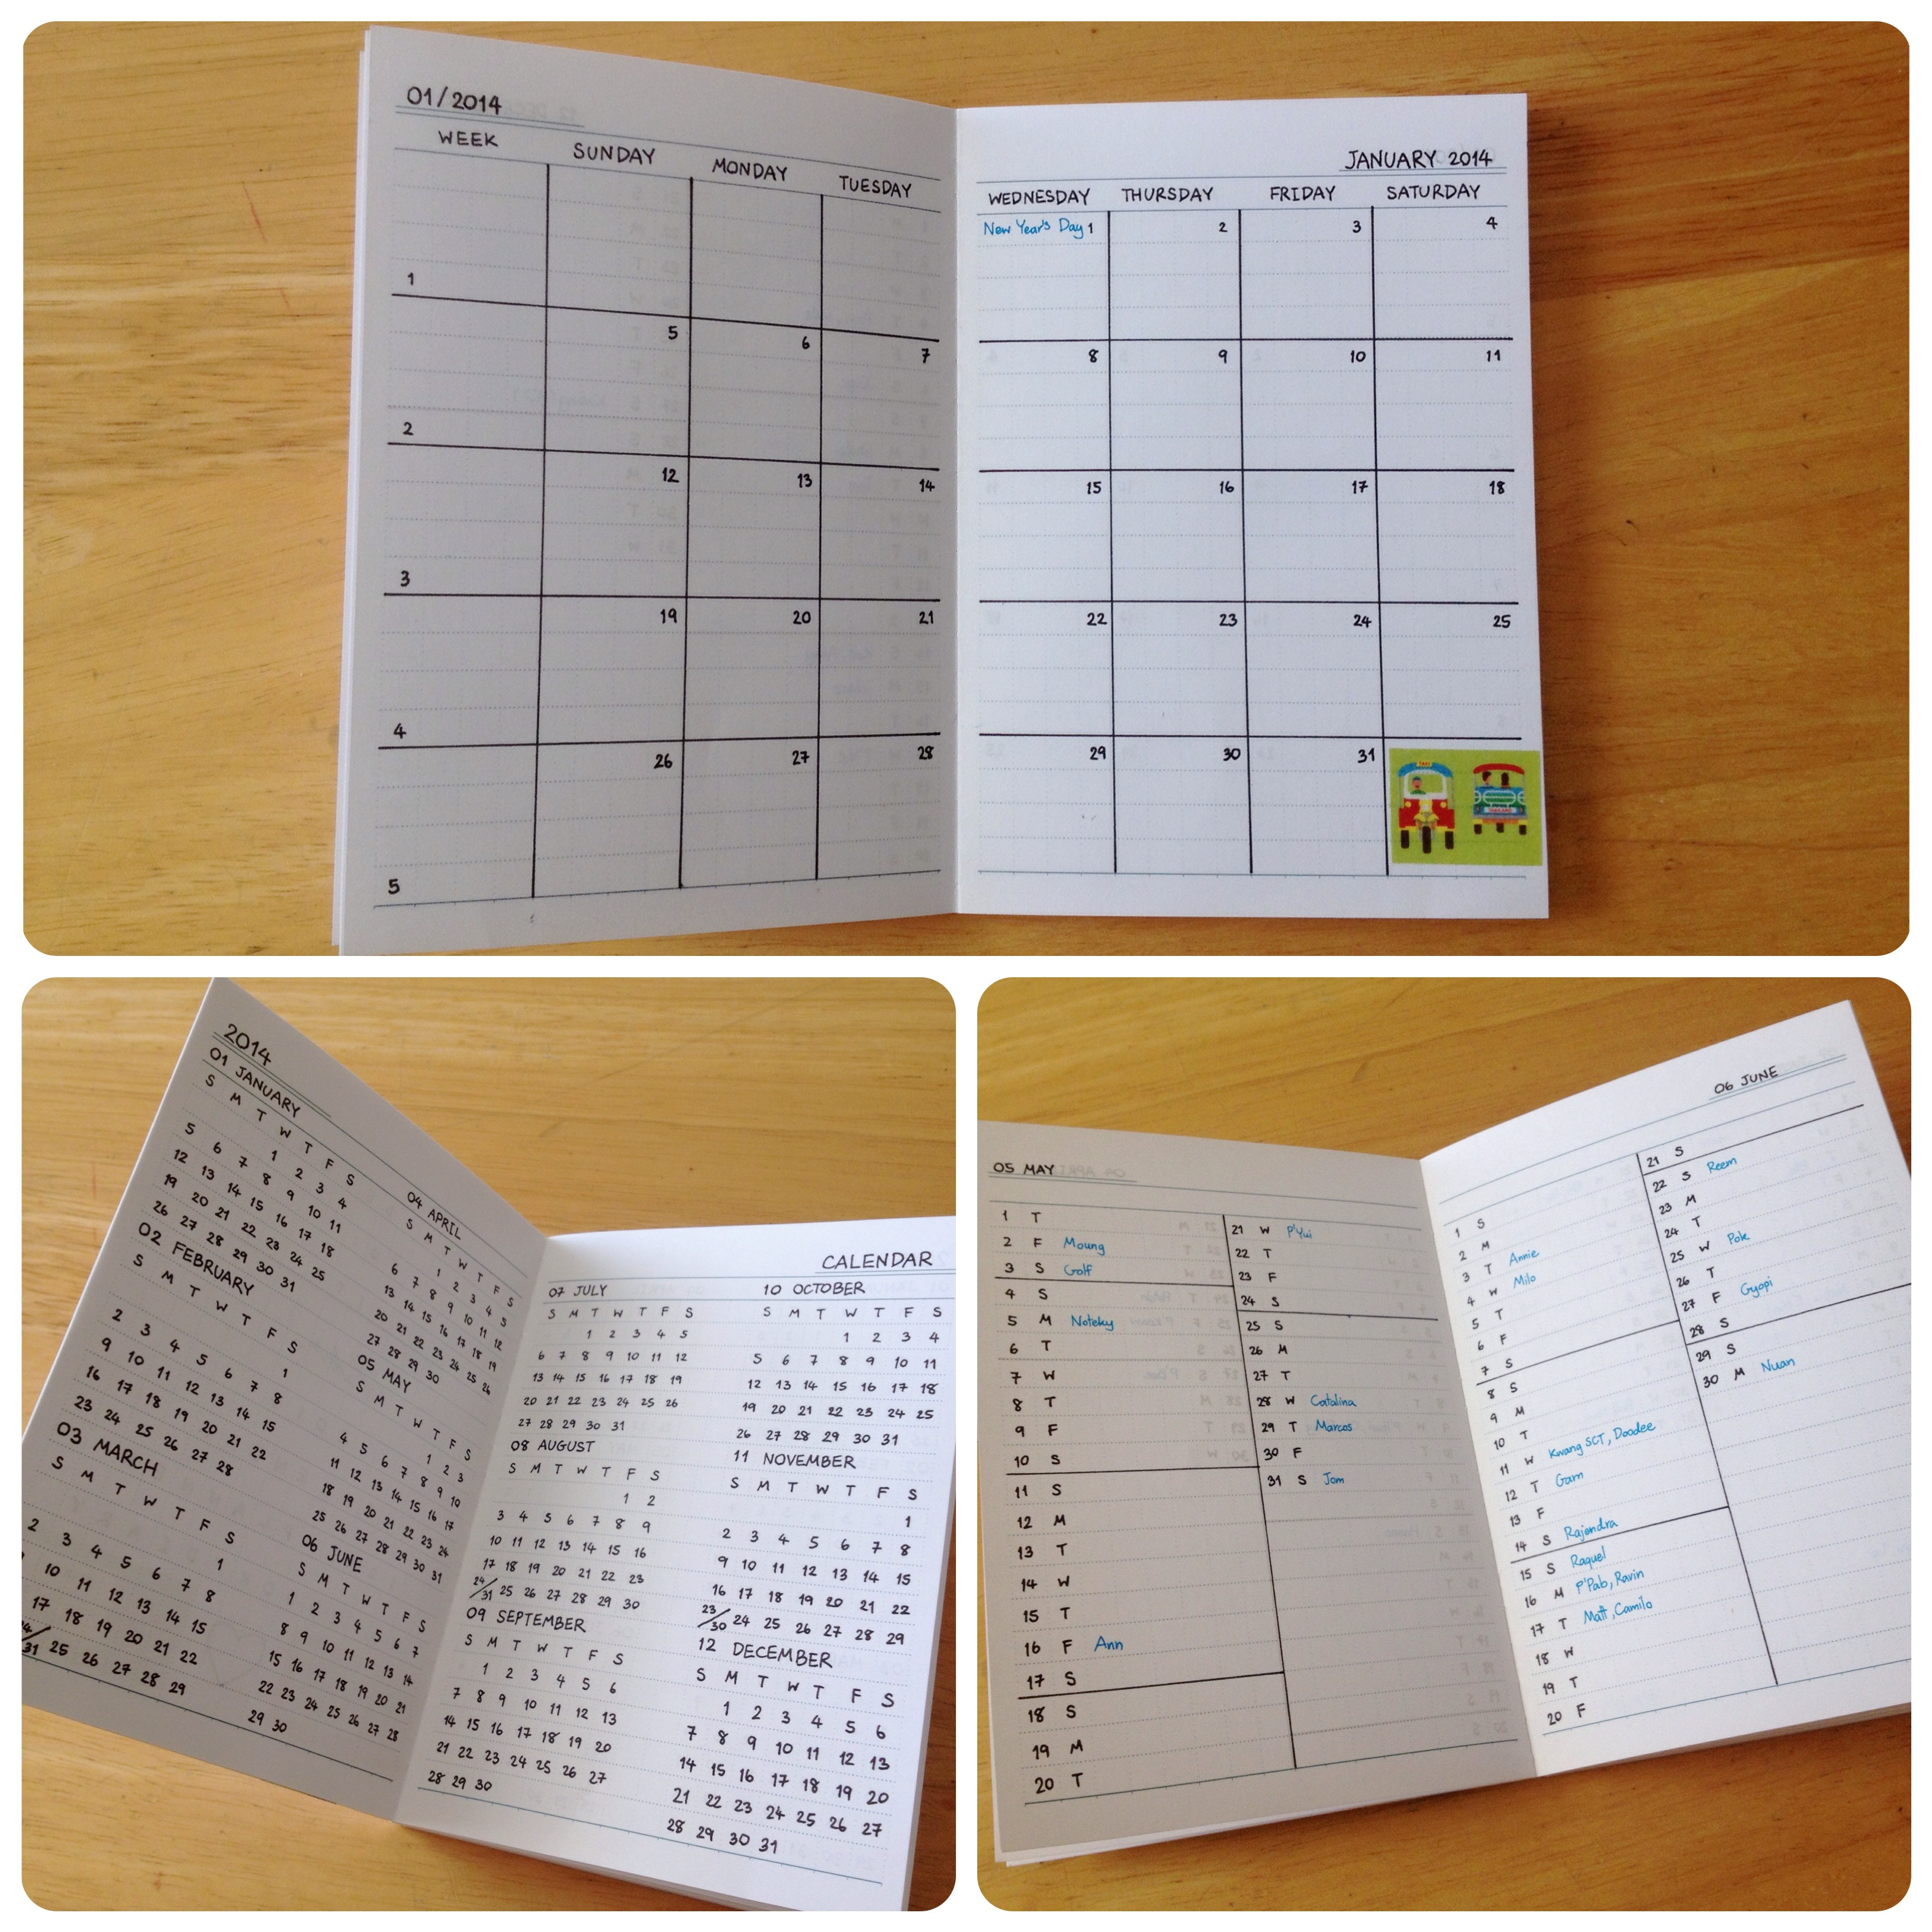 DIY Planner From Notebook  My DIY 2014 Planner – Pannita s Toy Box